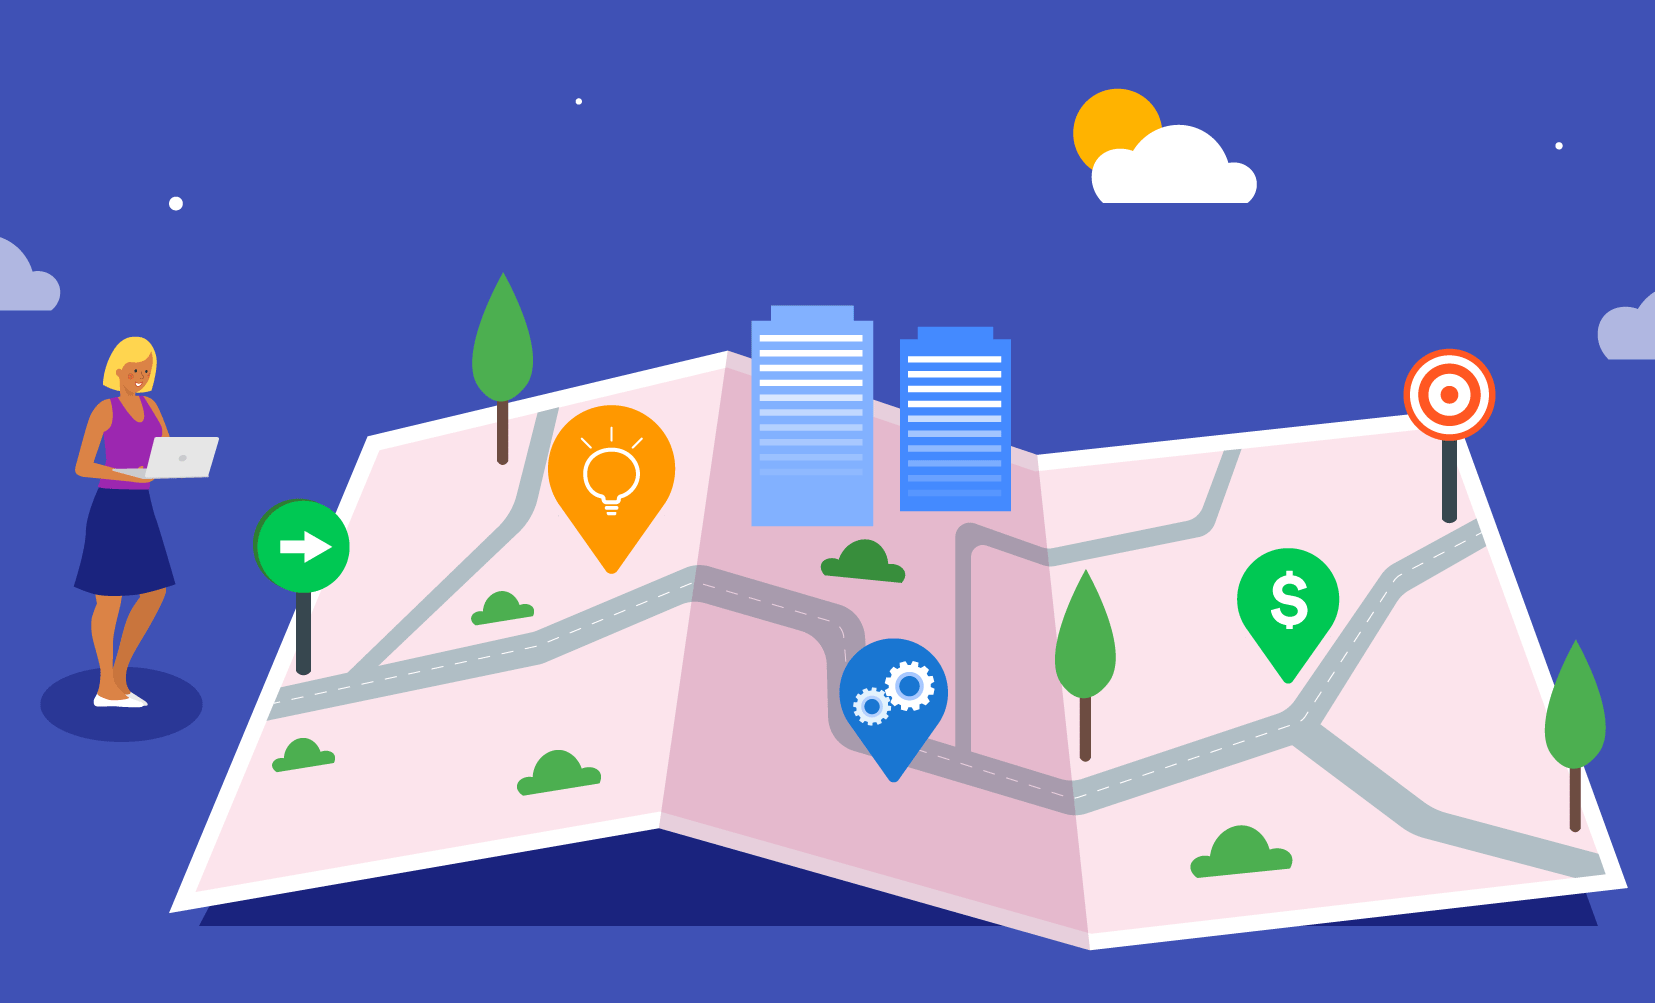 What Is a Product Roadmap?